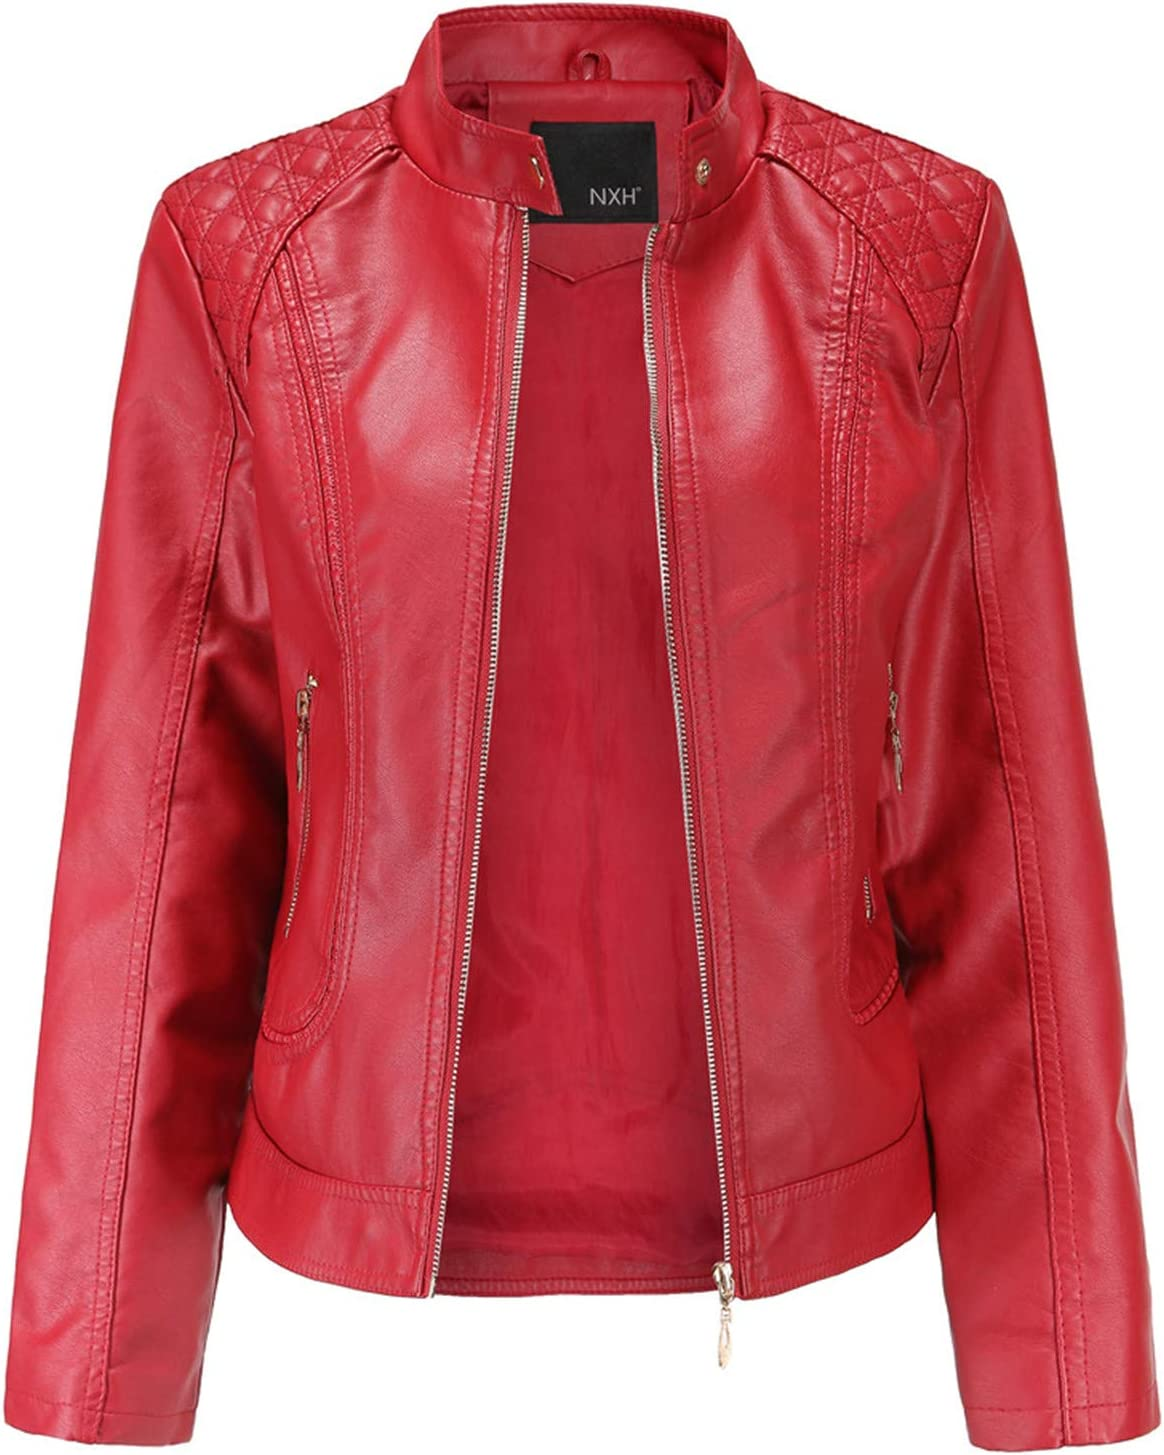 Women's Black Faux Leather Jacket Moto Biker Short Coat PU Jacket for Motorcycle Leather Coats for Women H2,RED,XL